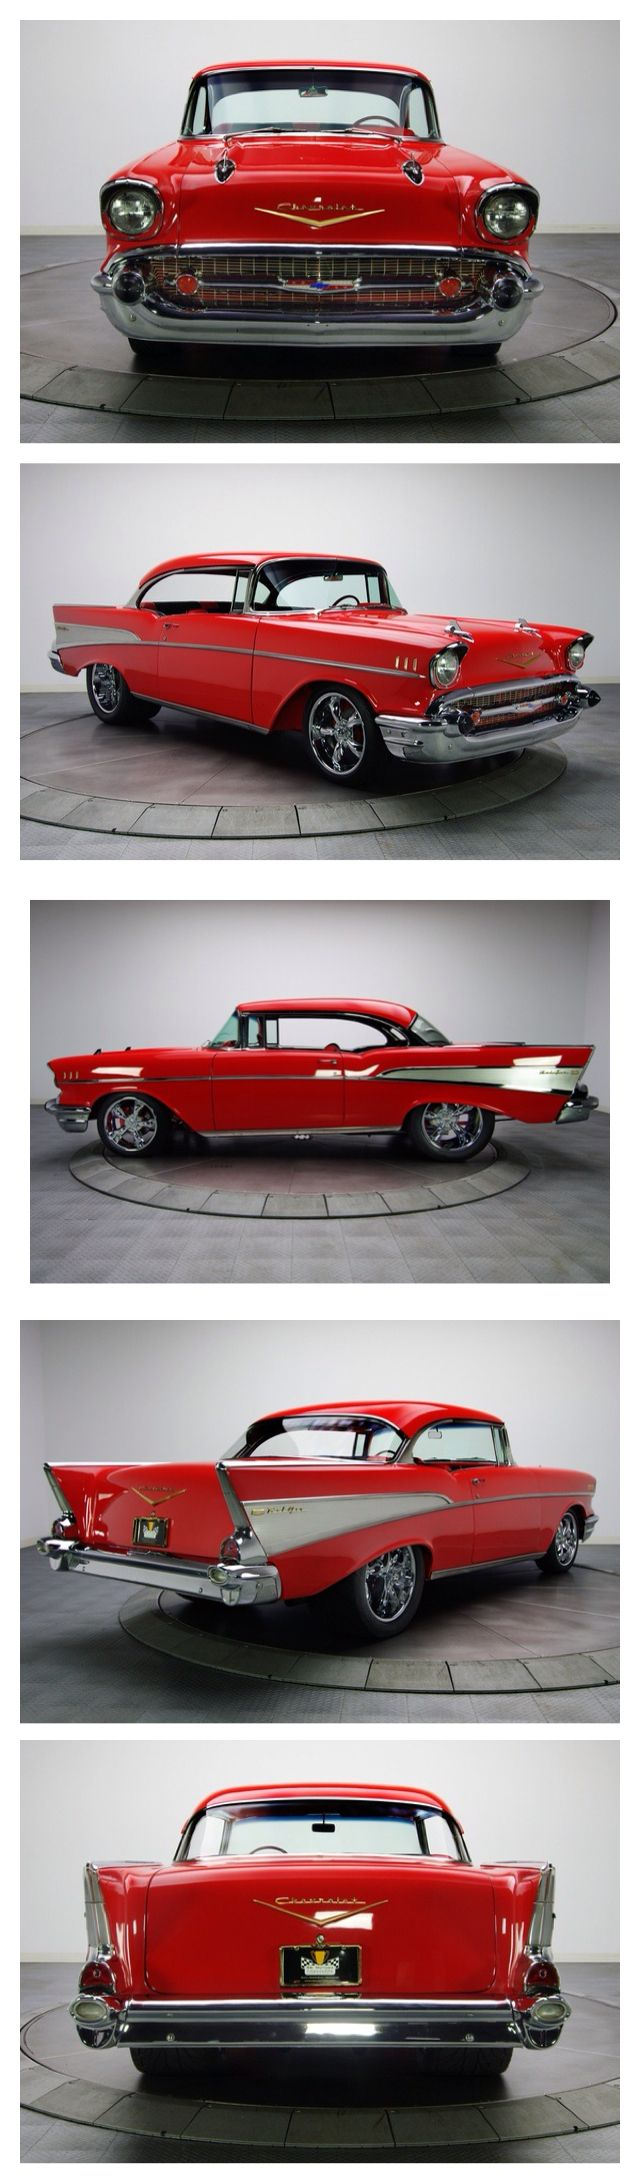 Chevrolet Bel Air 1957.